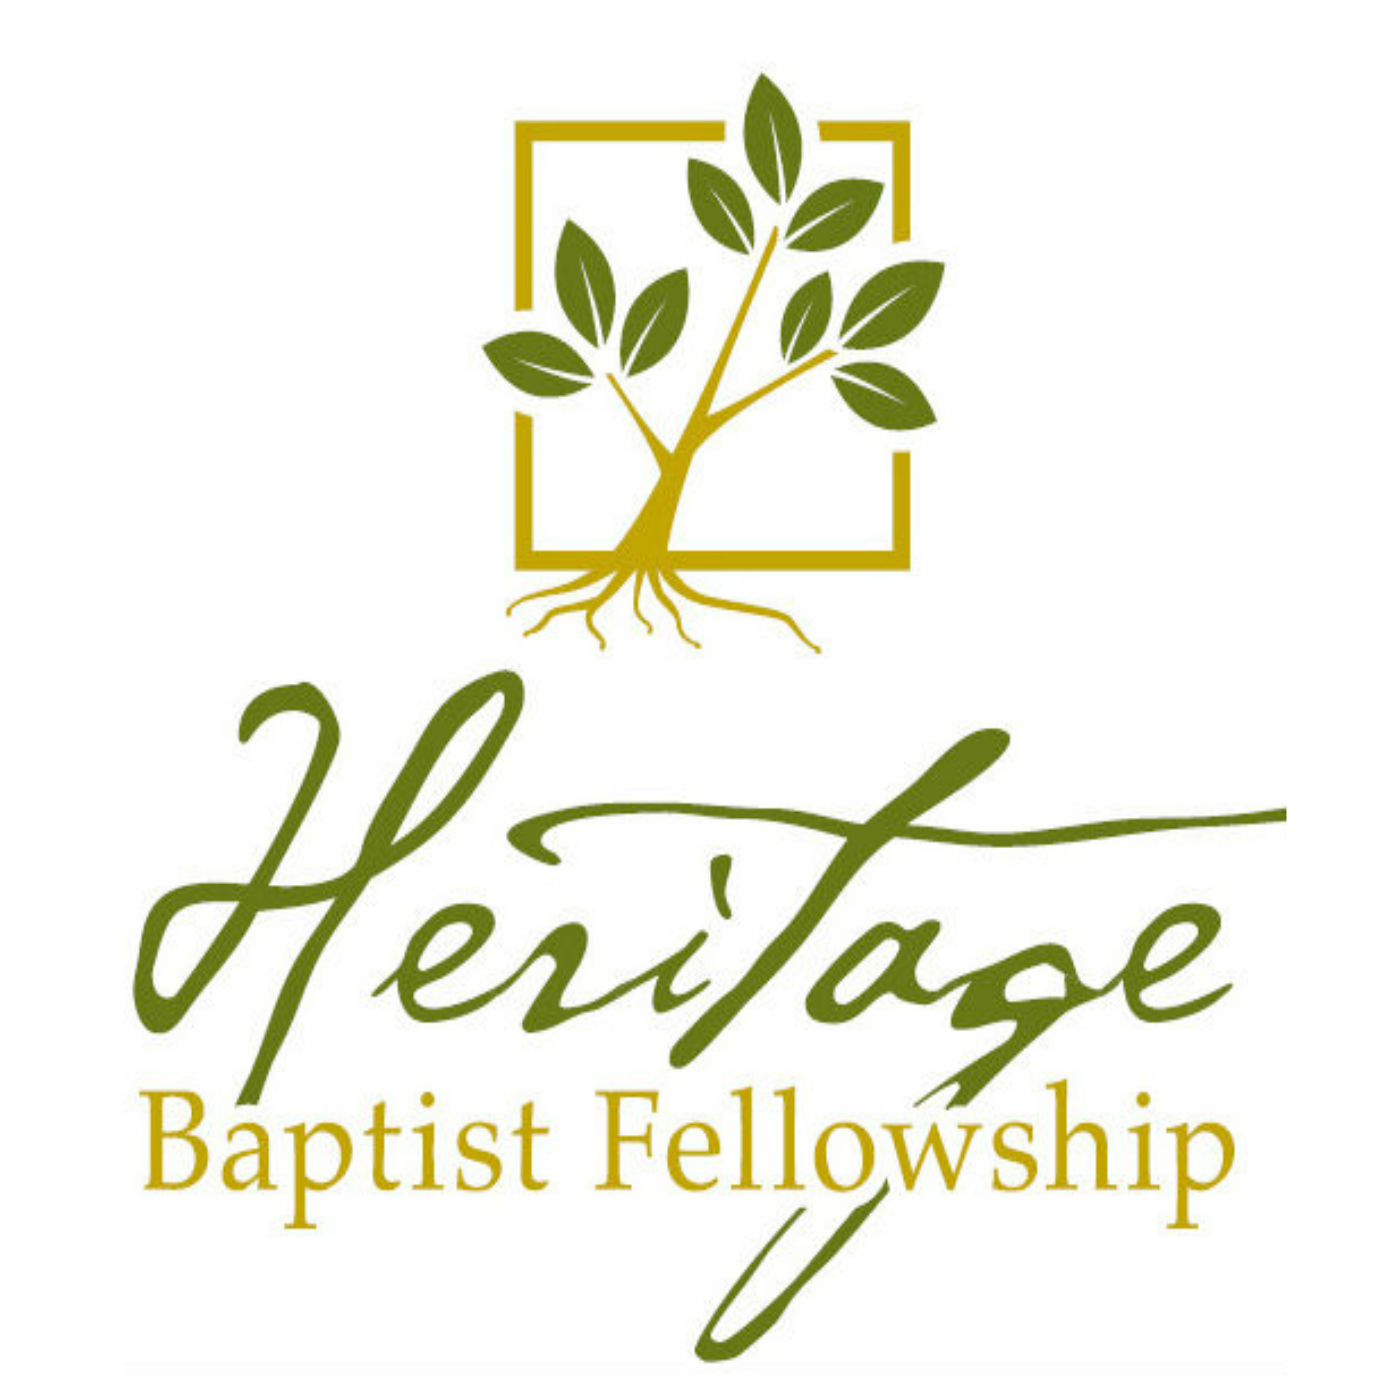 Messages - HERITAGE BAPTIST FELLOWSHIP